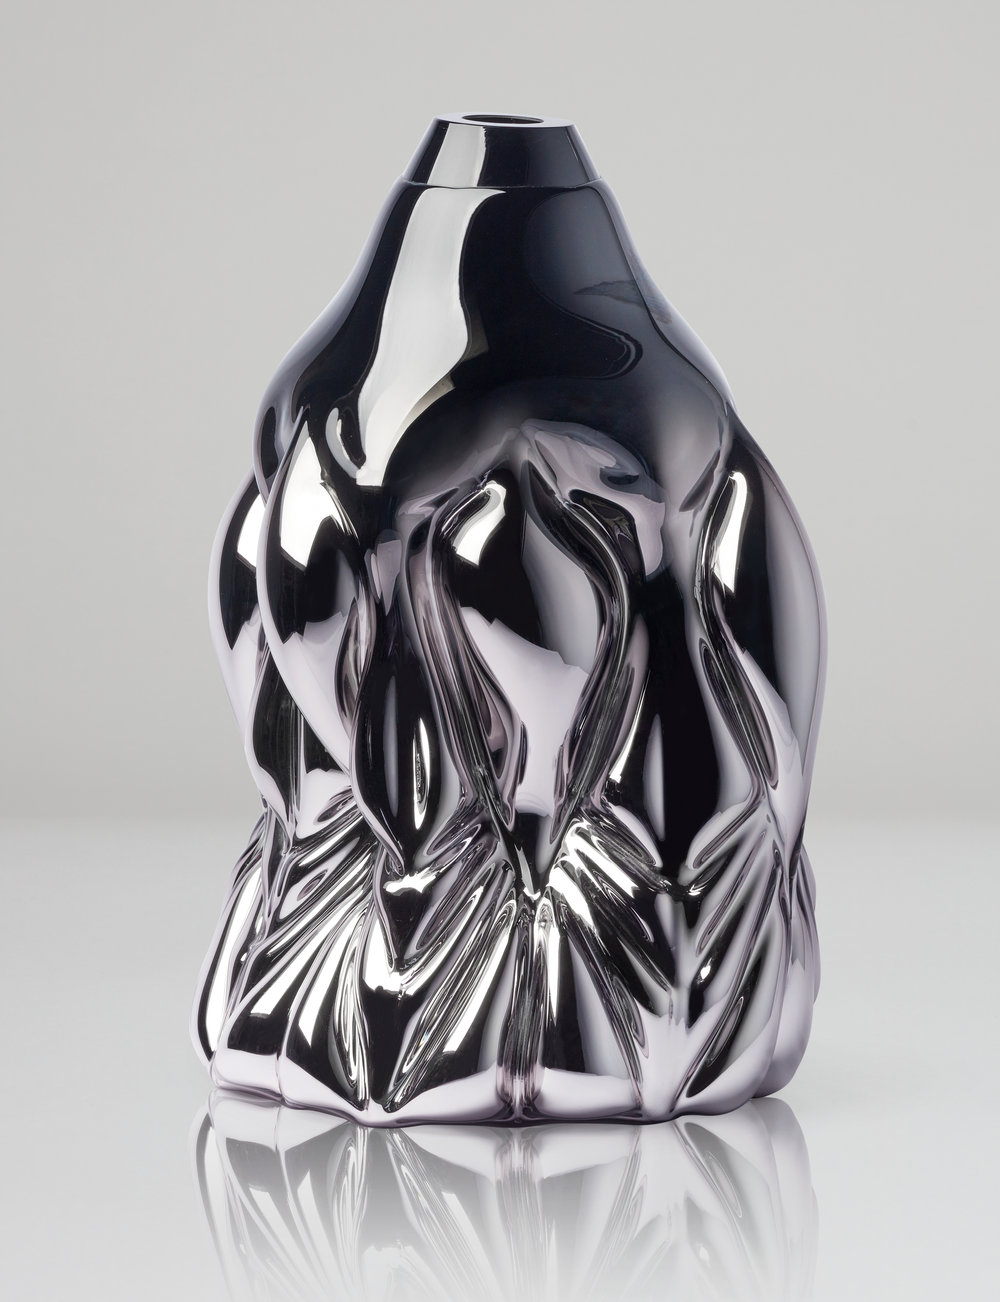 Goldfish Print, black metallic.  2018 Boda Glasbruk. Shape-blown glass, mirror foiled. 48 cm x 32 cm. Edition 1 + 2 AP